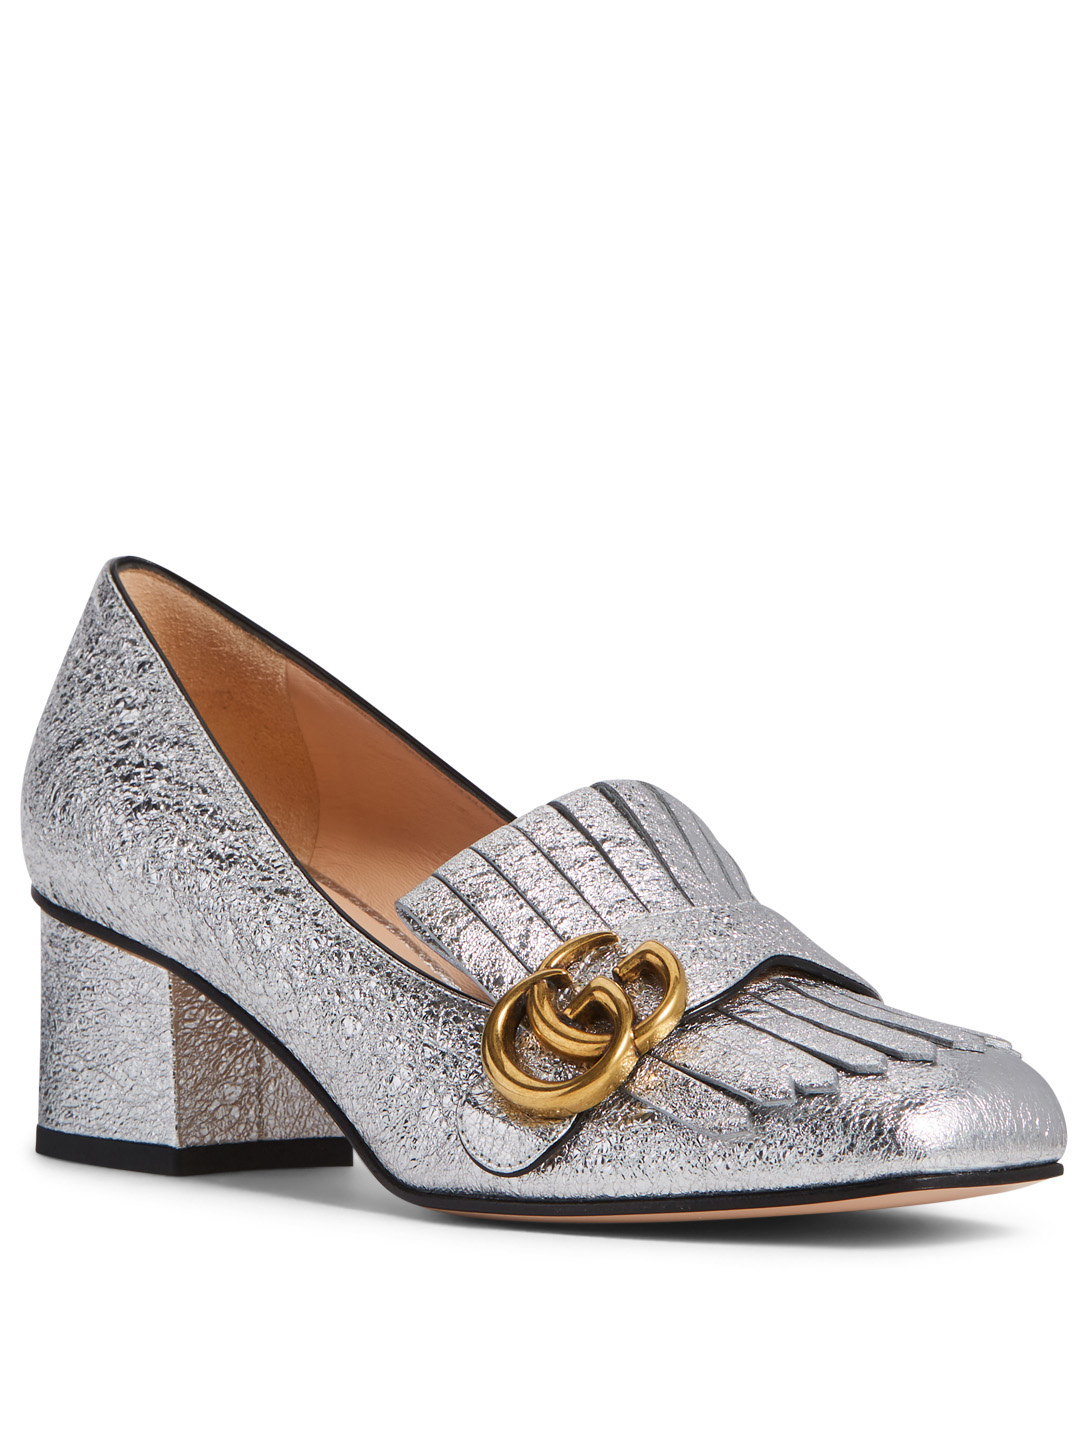 130c5ef71aa ... GUCCI Marmont Metallic Leather Loafer Pumps Designers Silver ...